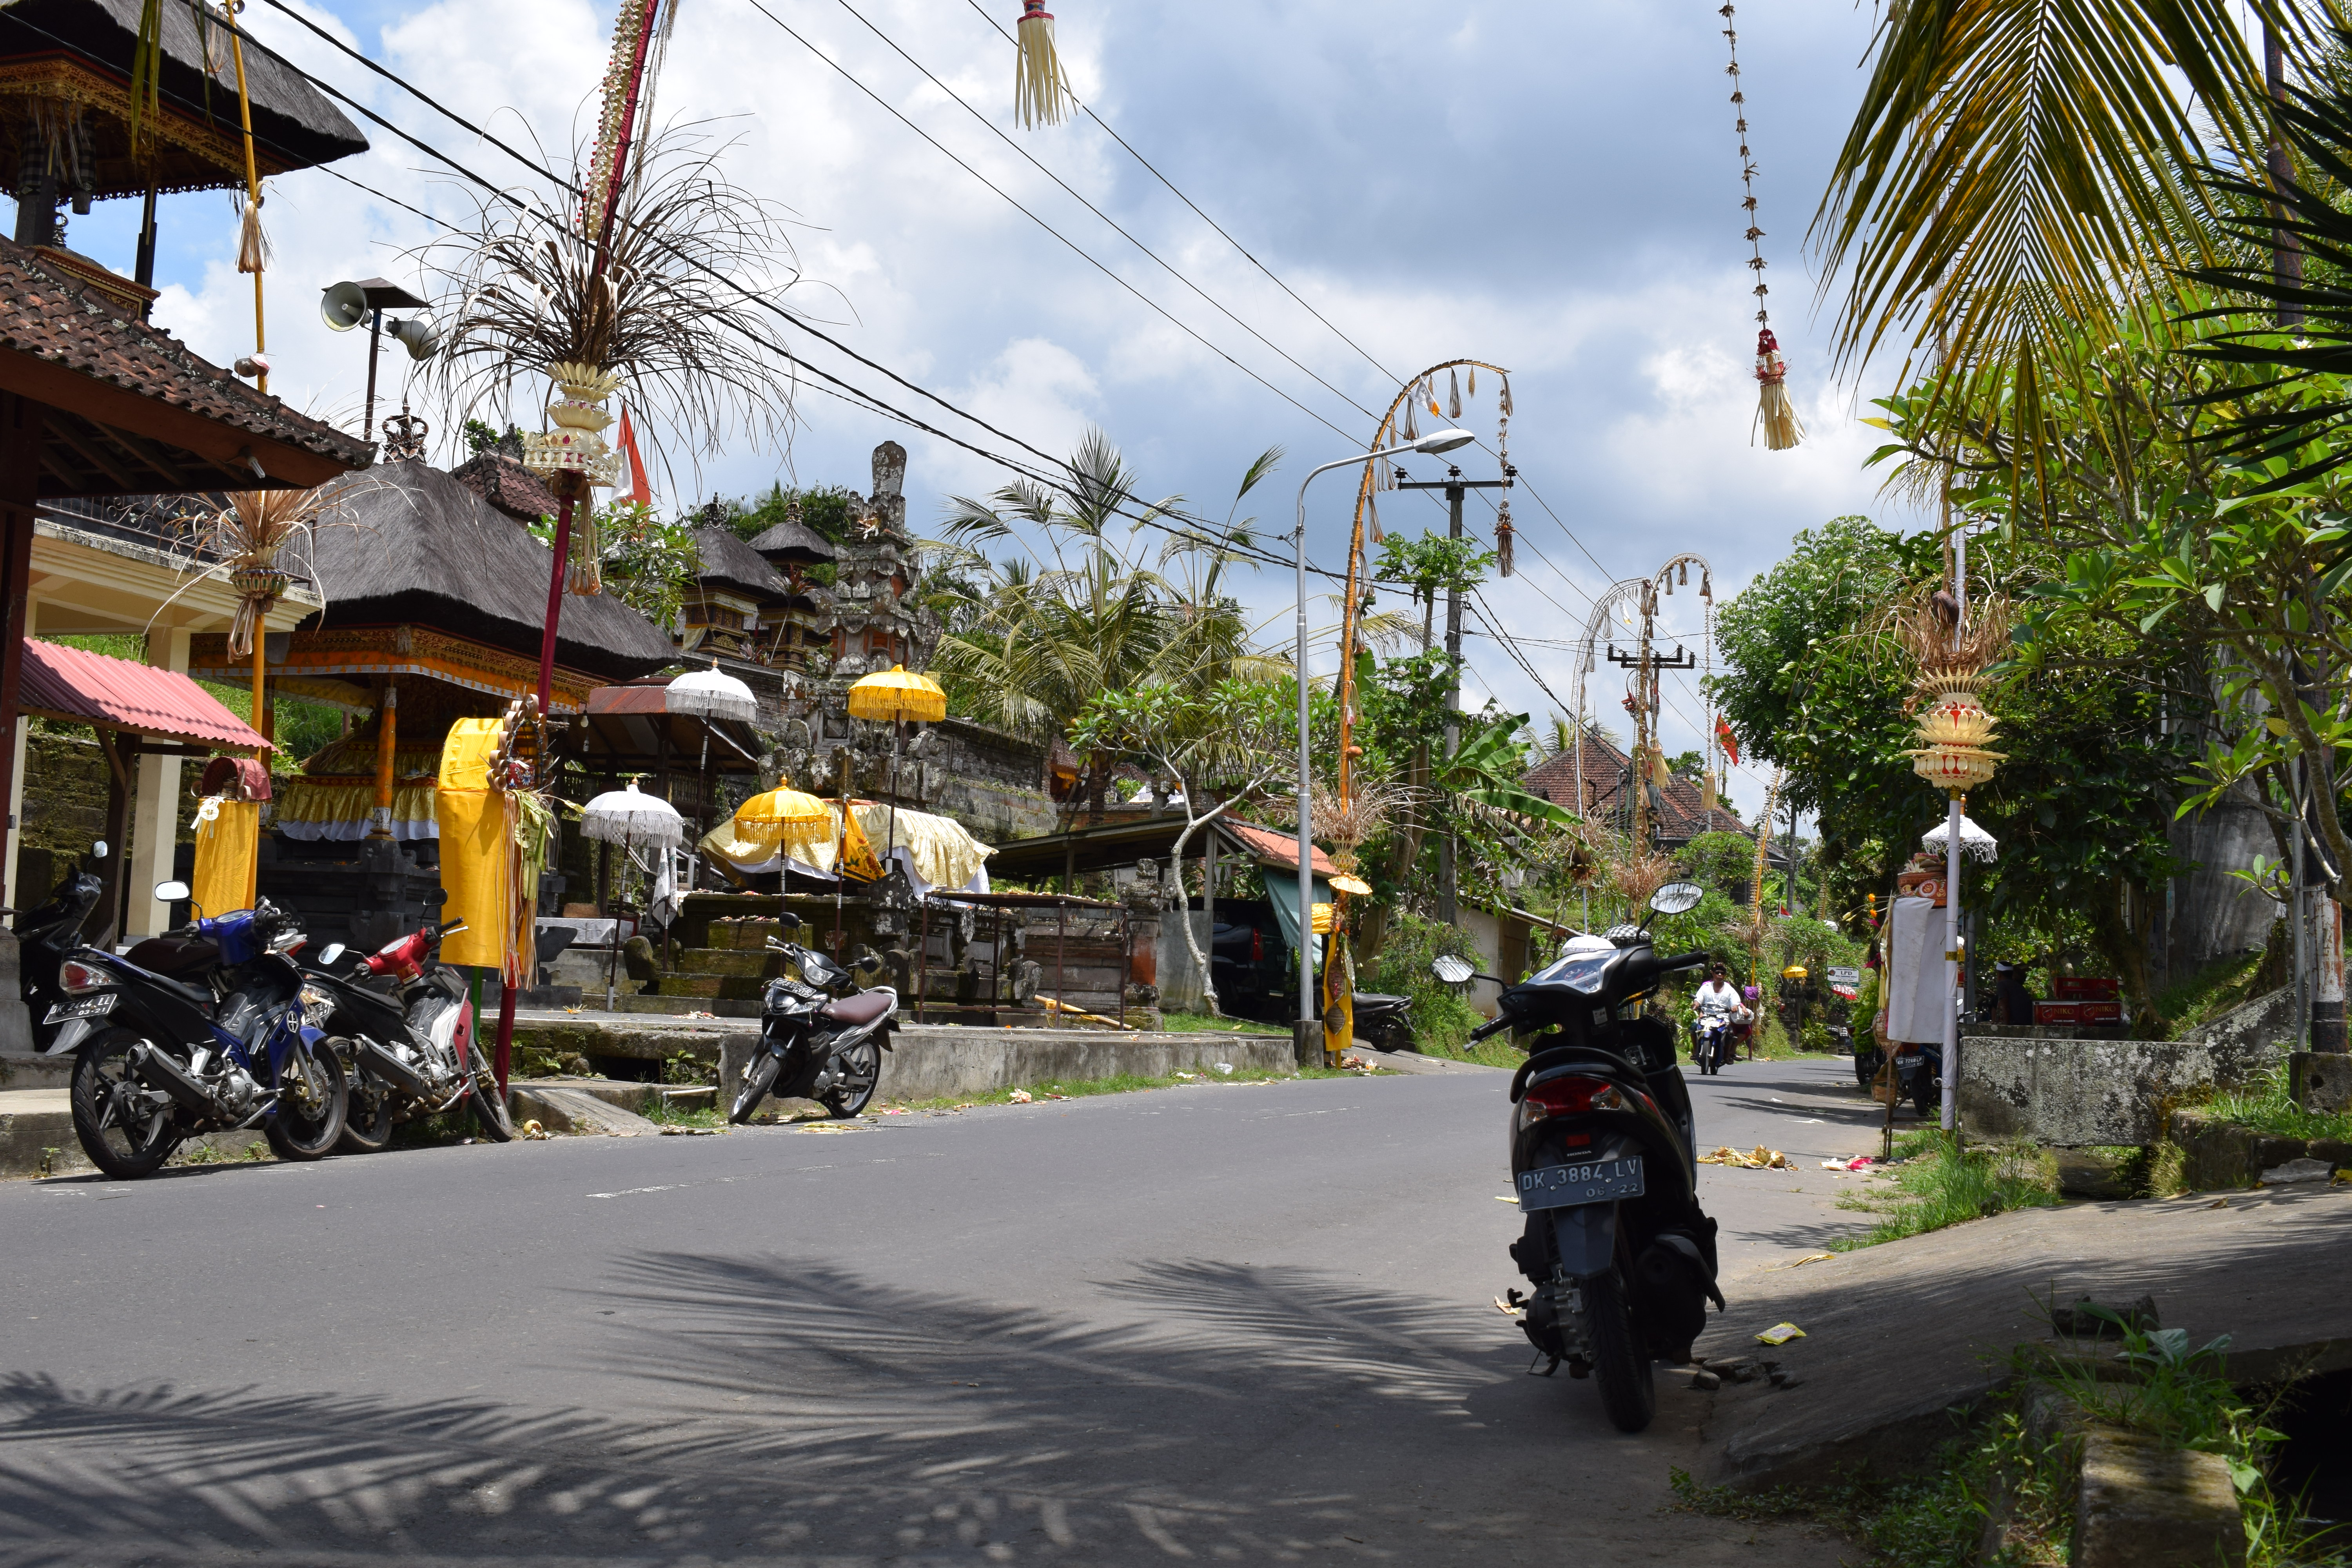 Motorcycles on the street in Ubud Bali